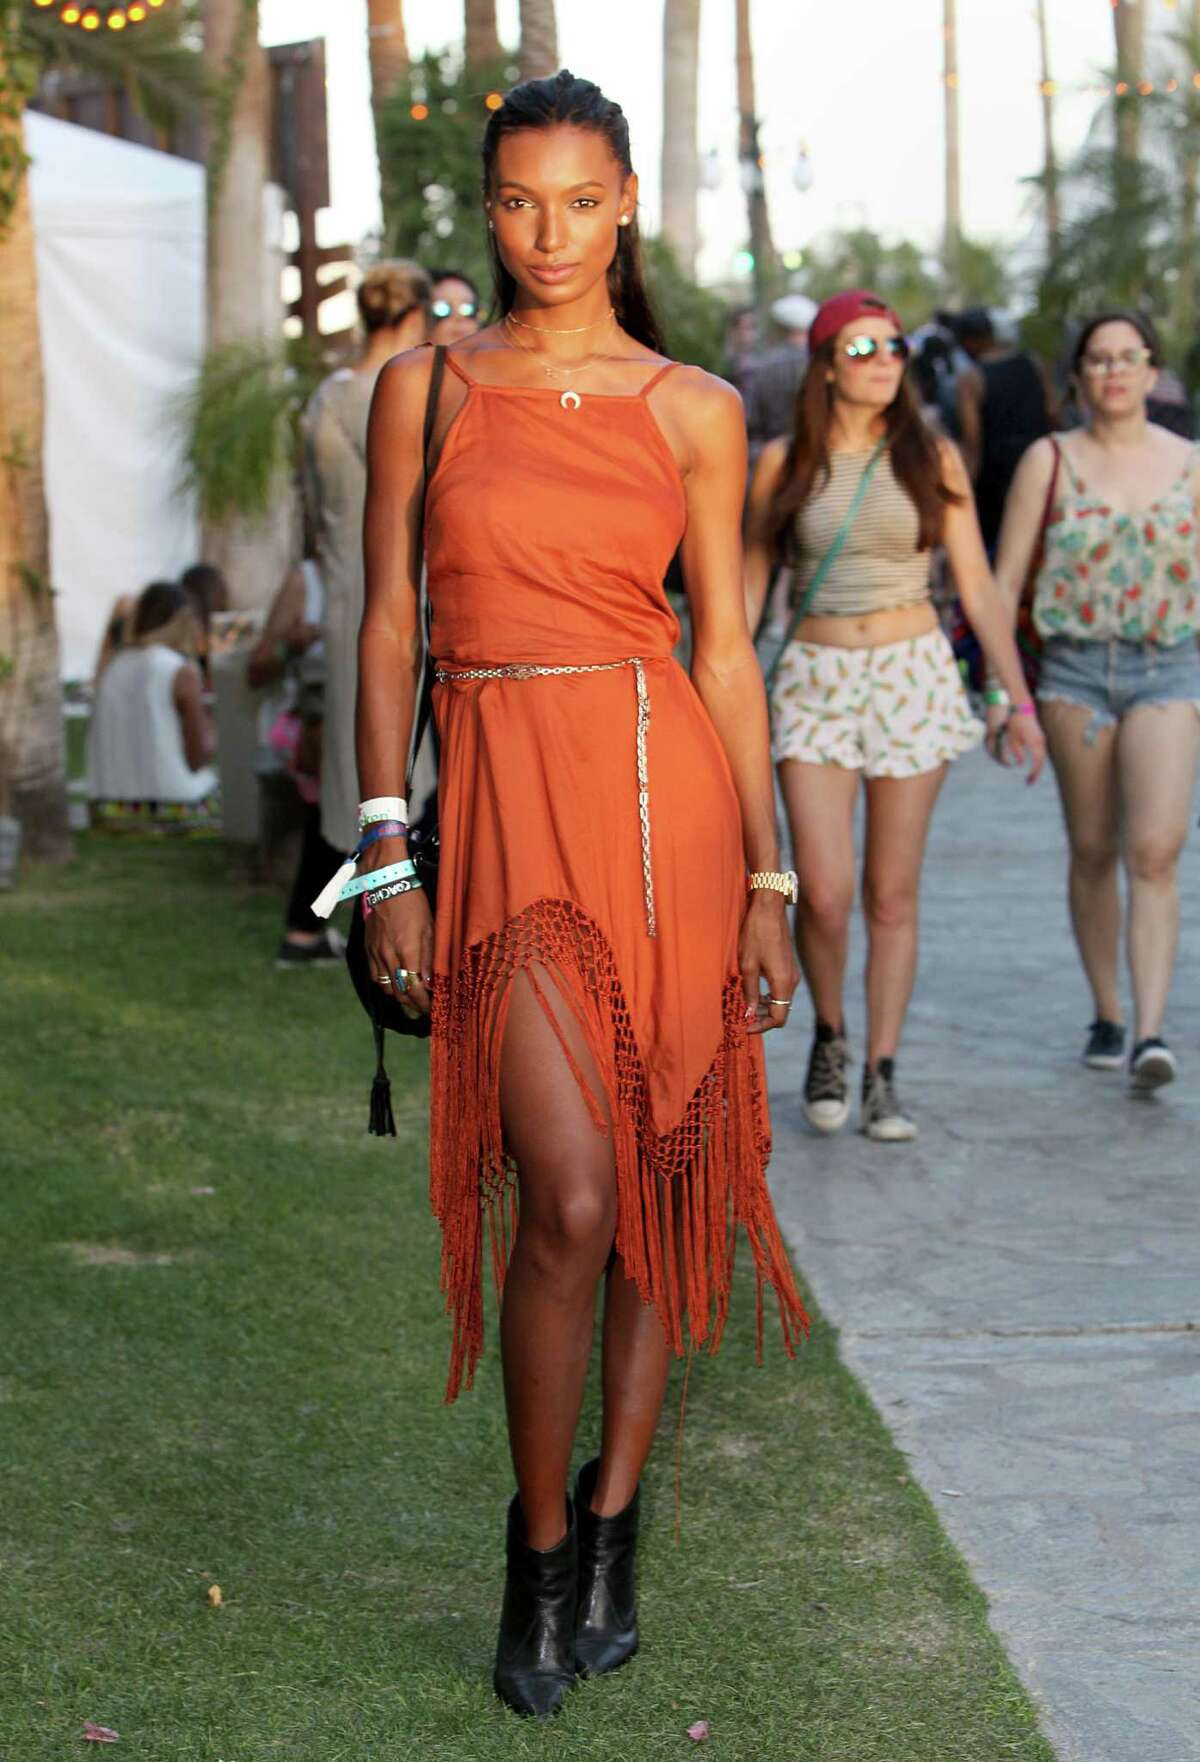 Jasmine Tookes in an Urban Outfitters dress and Rag and Bone boots attends the 2015 Coachella Valley Music and Arts Festival - Weekend 1 at The Empire Polo Club on April 11, 2015 in Indio, California.